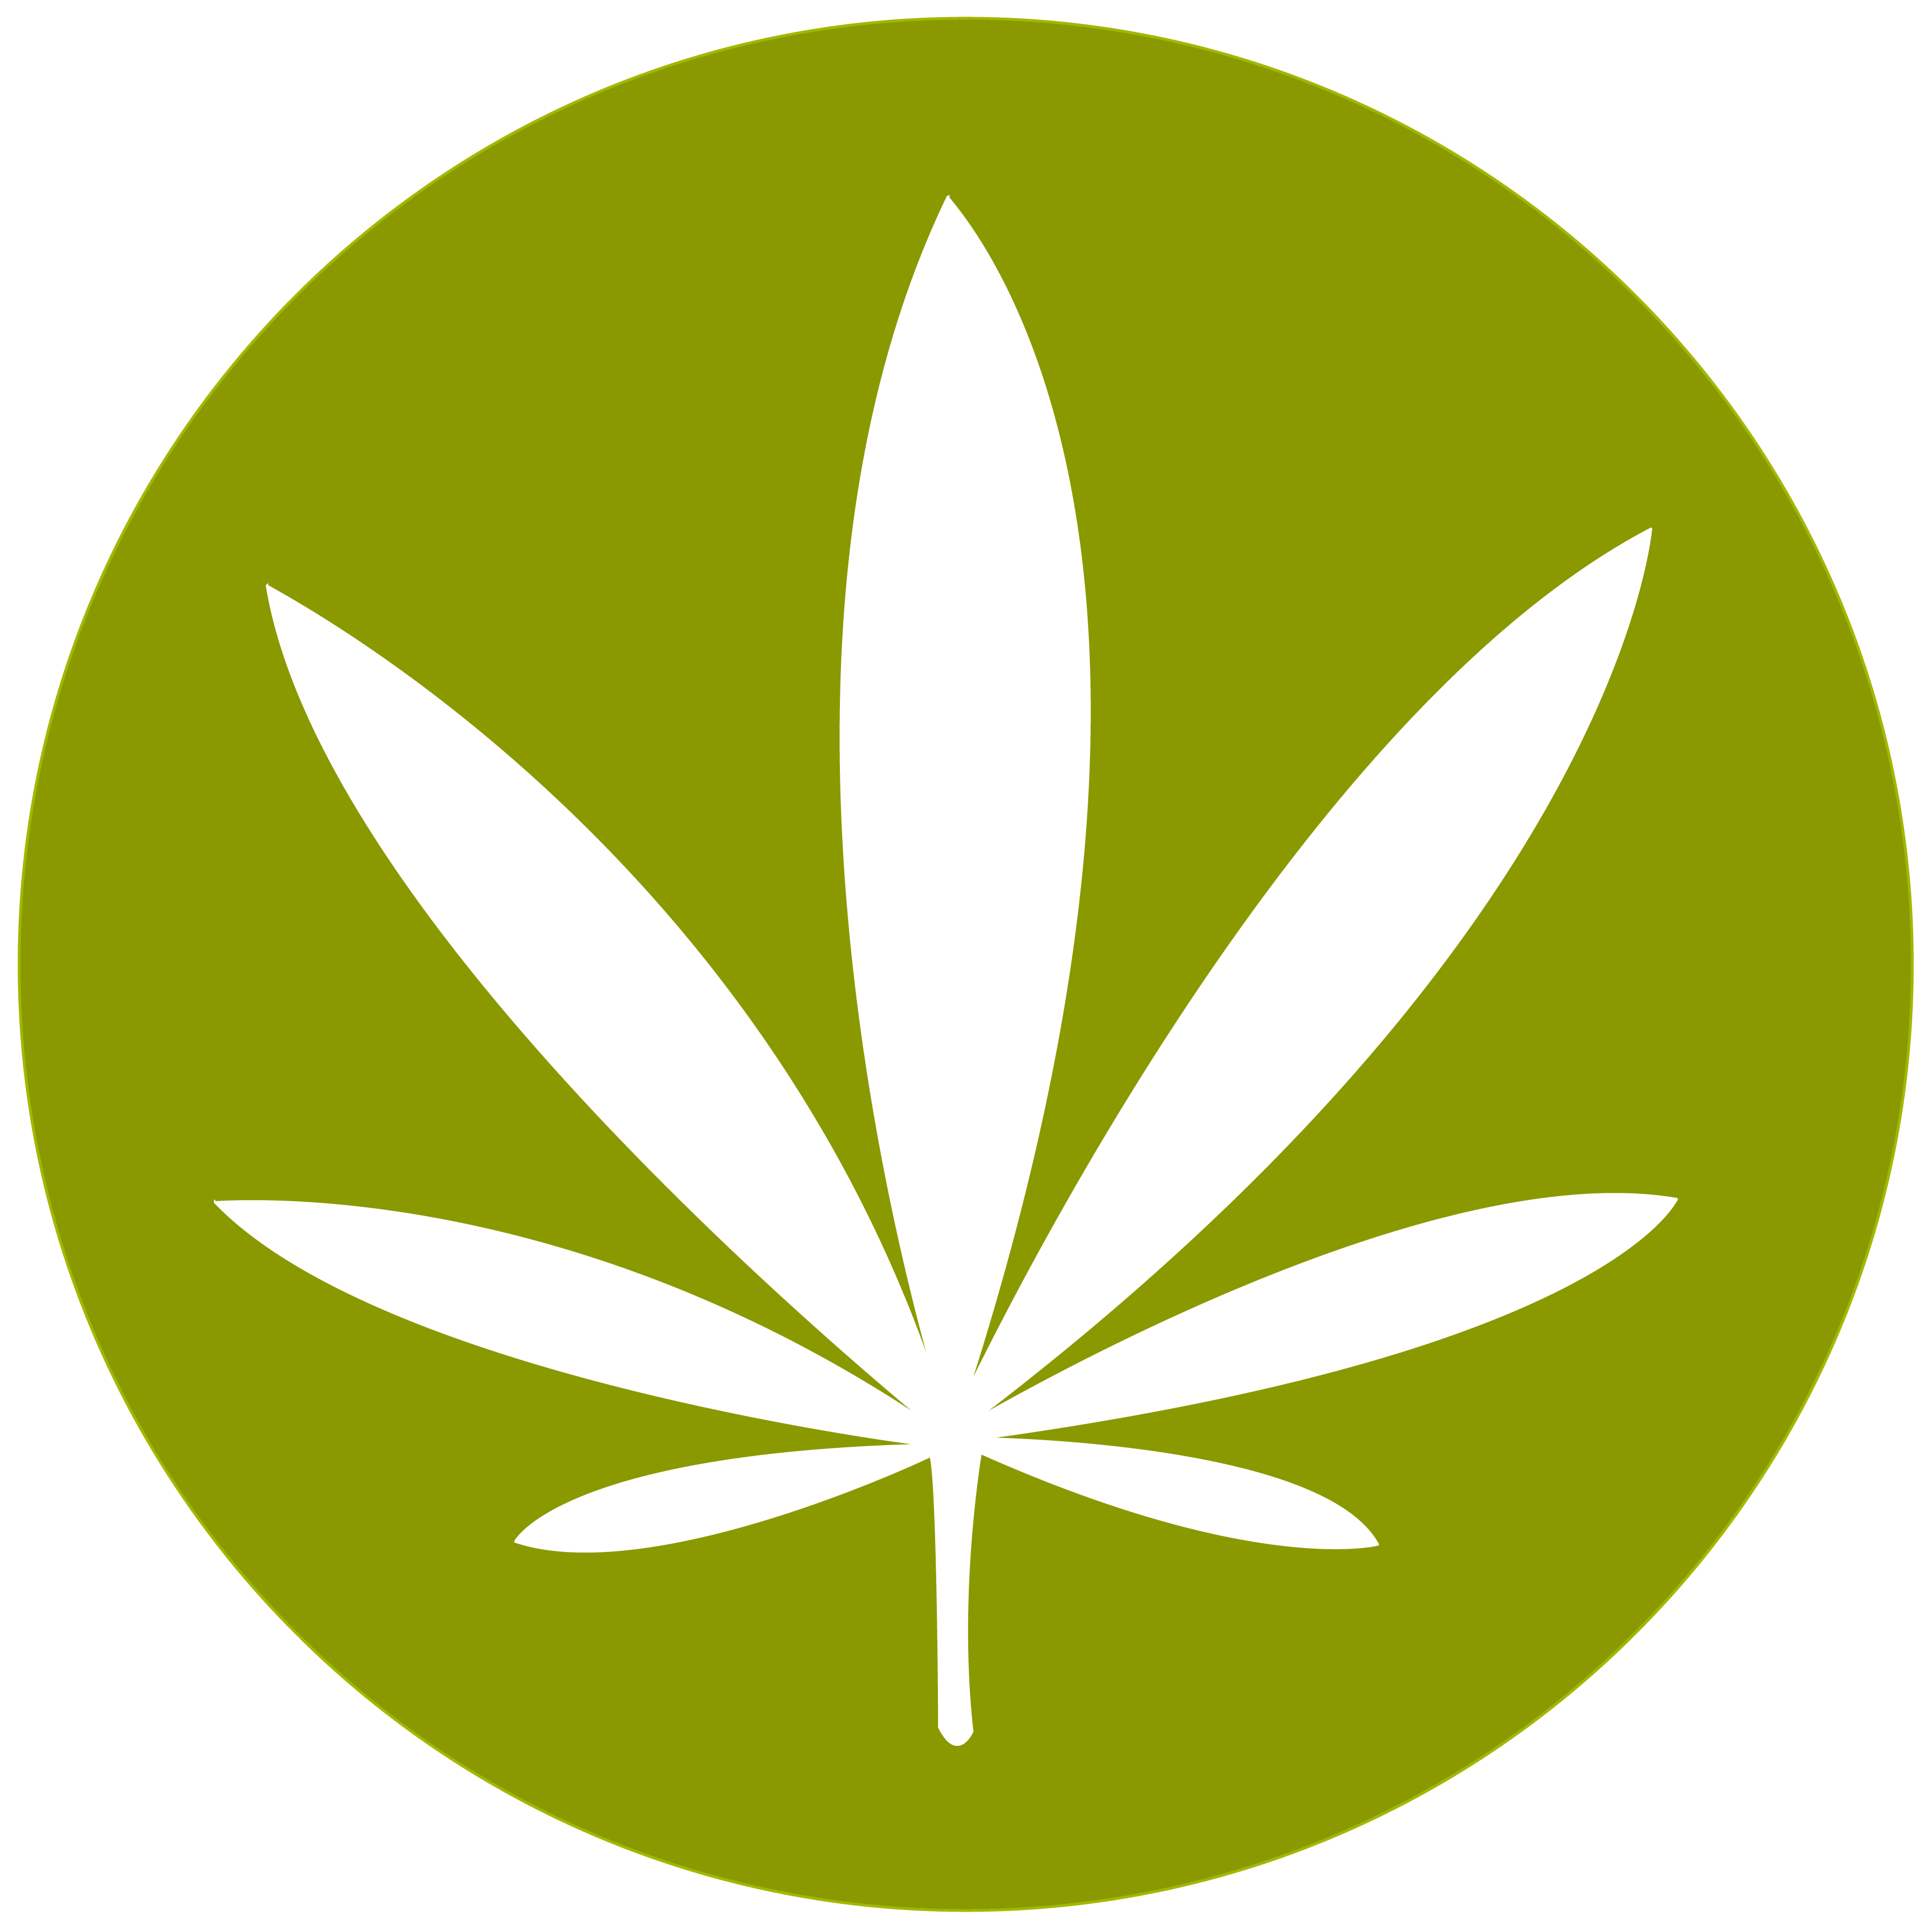 Weed svg stencil design. Cannabis png images free